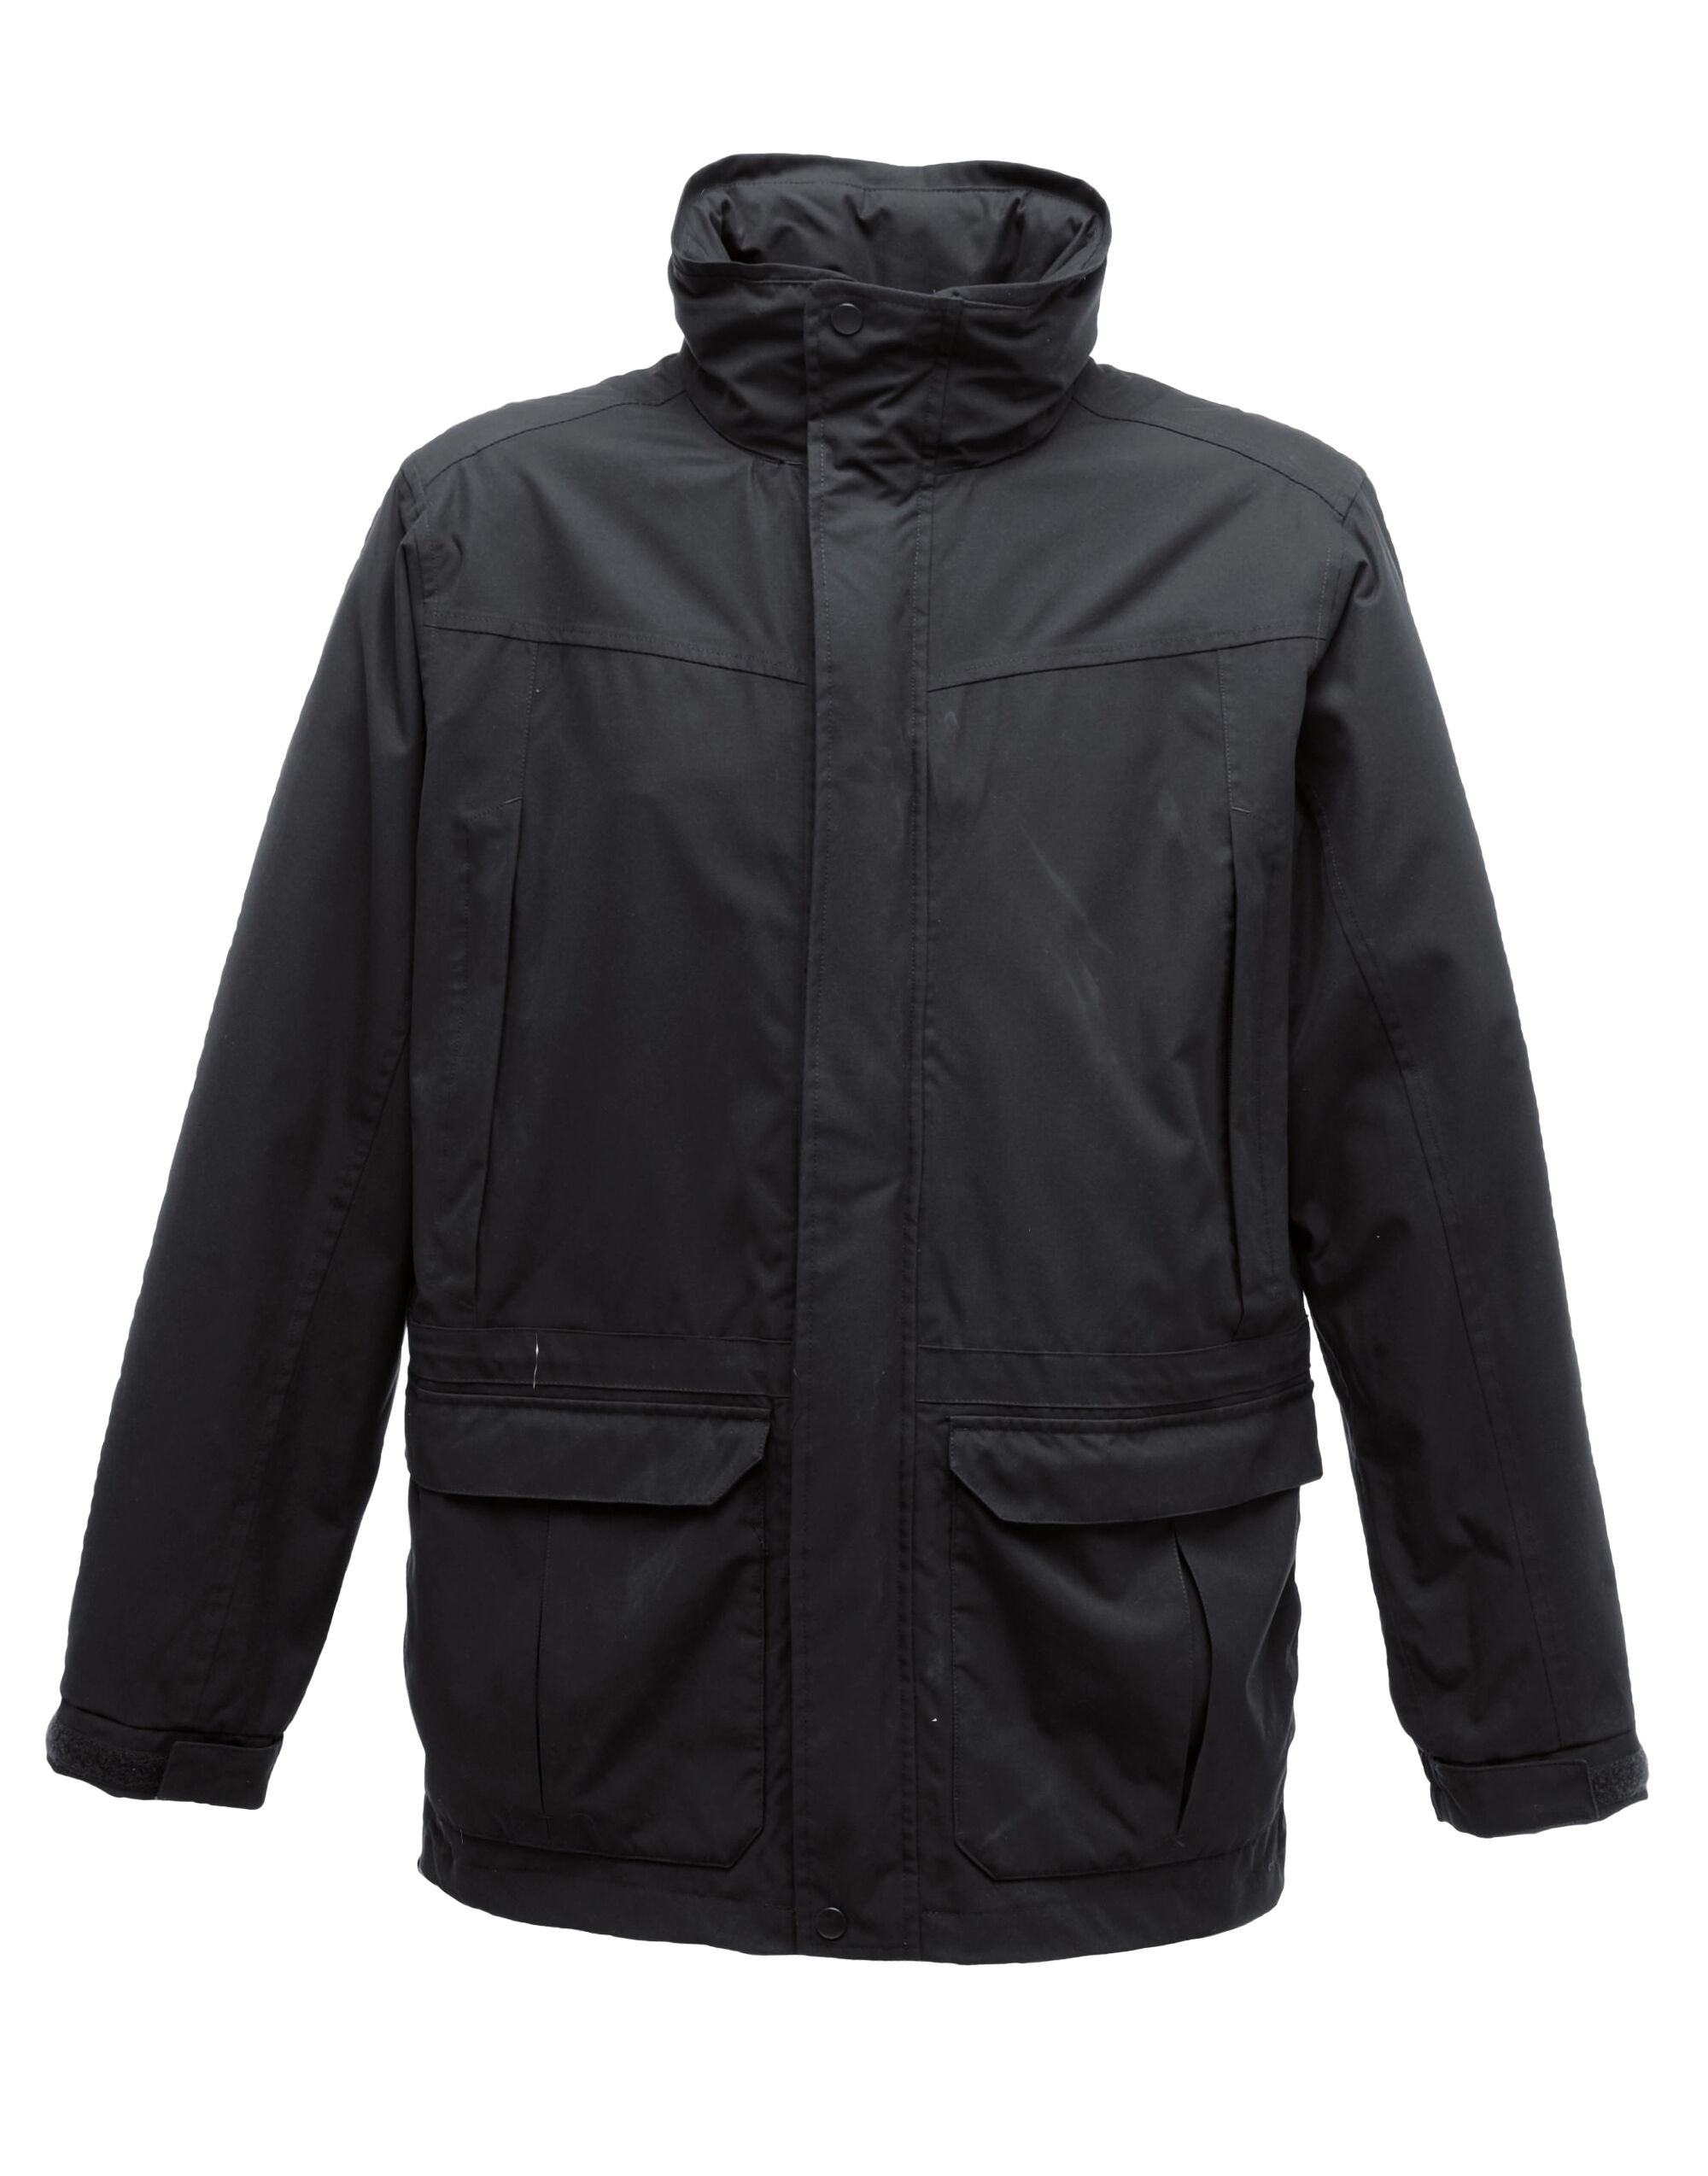 Vertex III Jacket